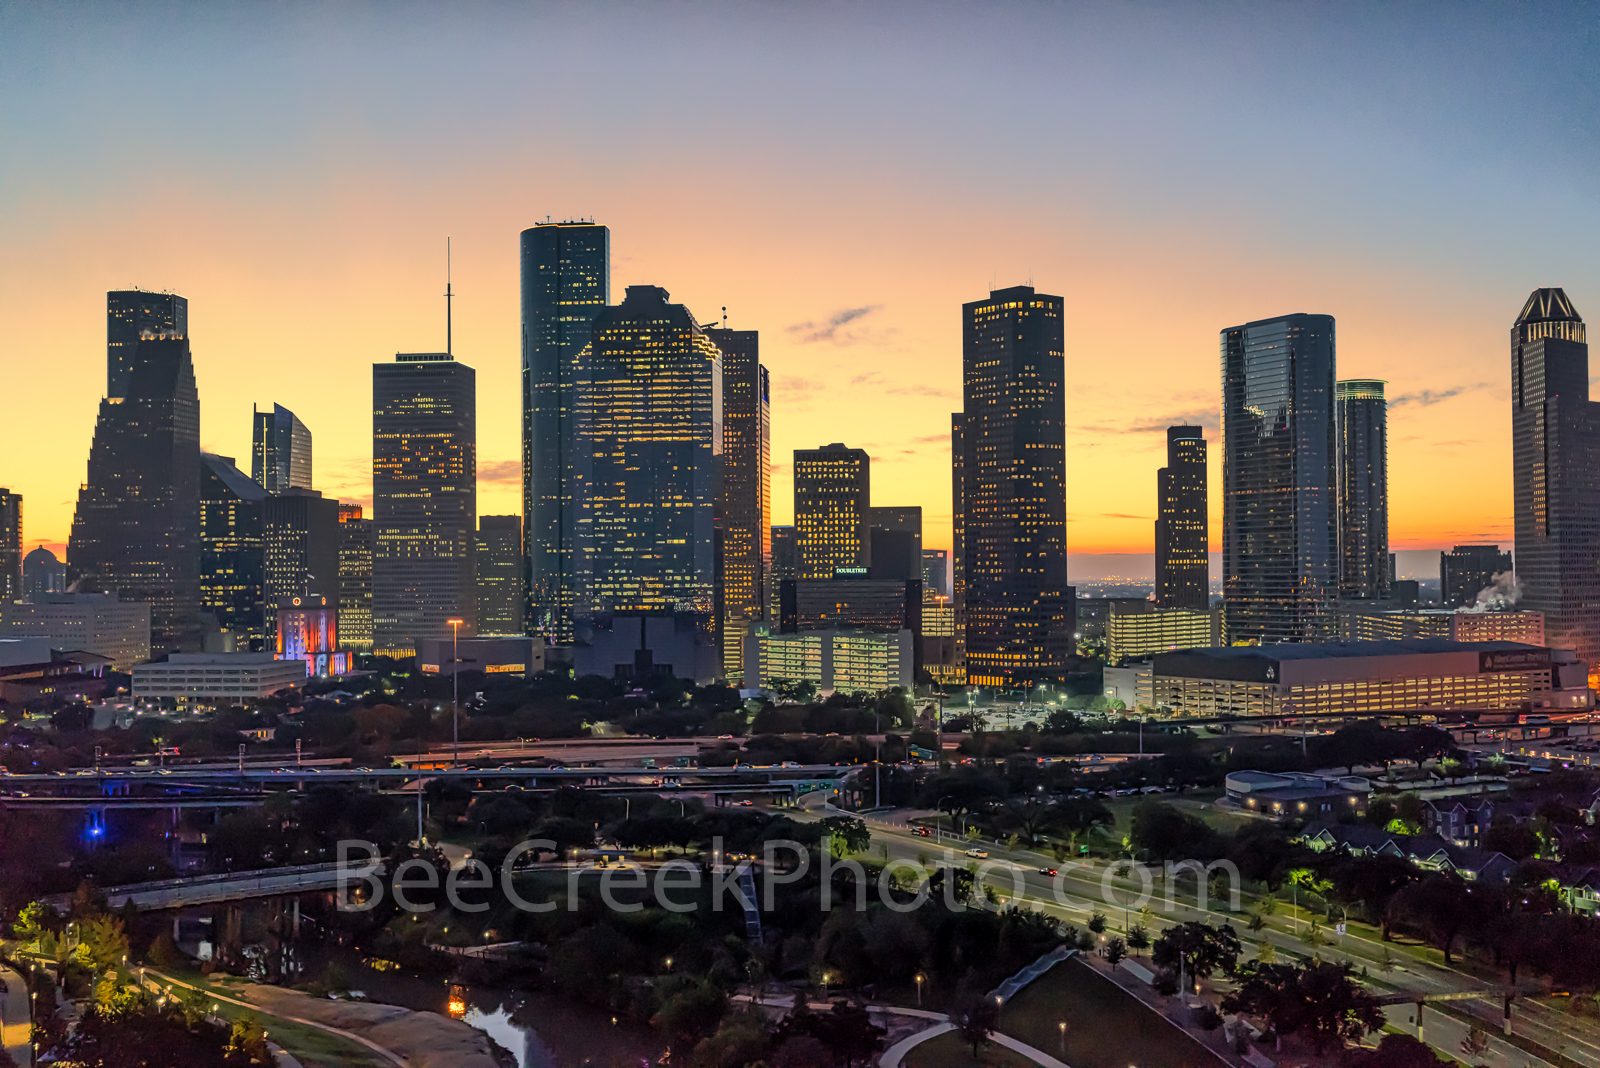 Houston cityscape, Sunrise, glow, Buffalo Bayou, skylines, Houston cityscape, cityscapes, aerial, downtown, reflections, pinks, oranges, sky, morning, city views, city, cities, trees, high rise, skysc, photo